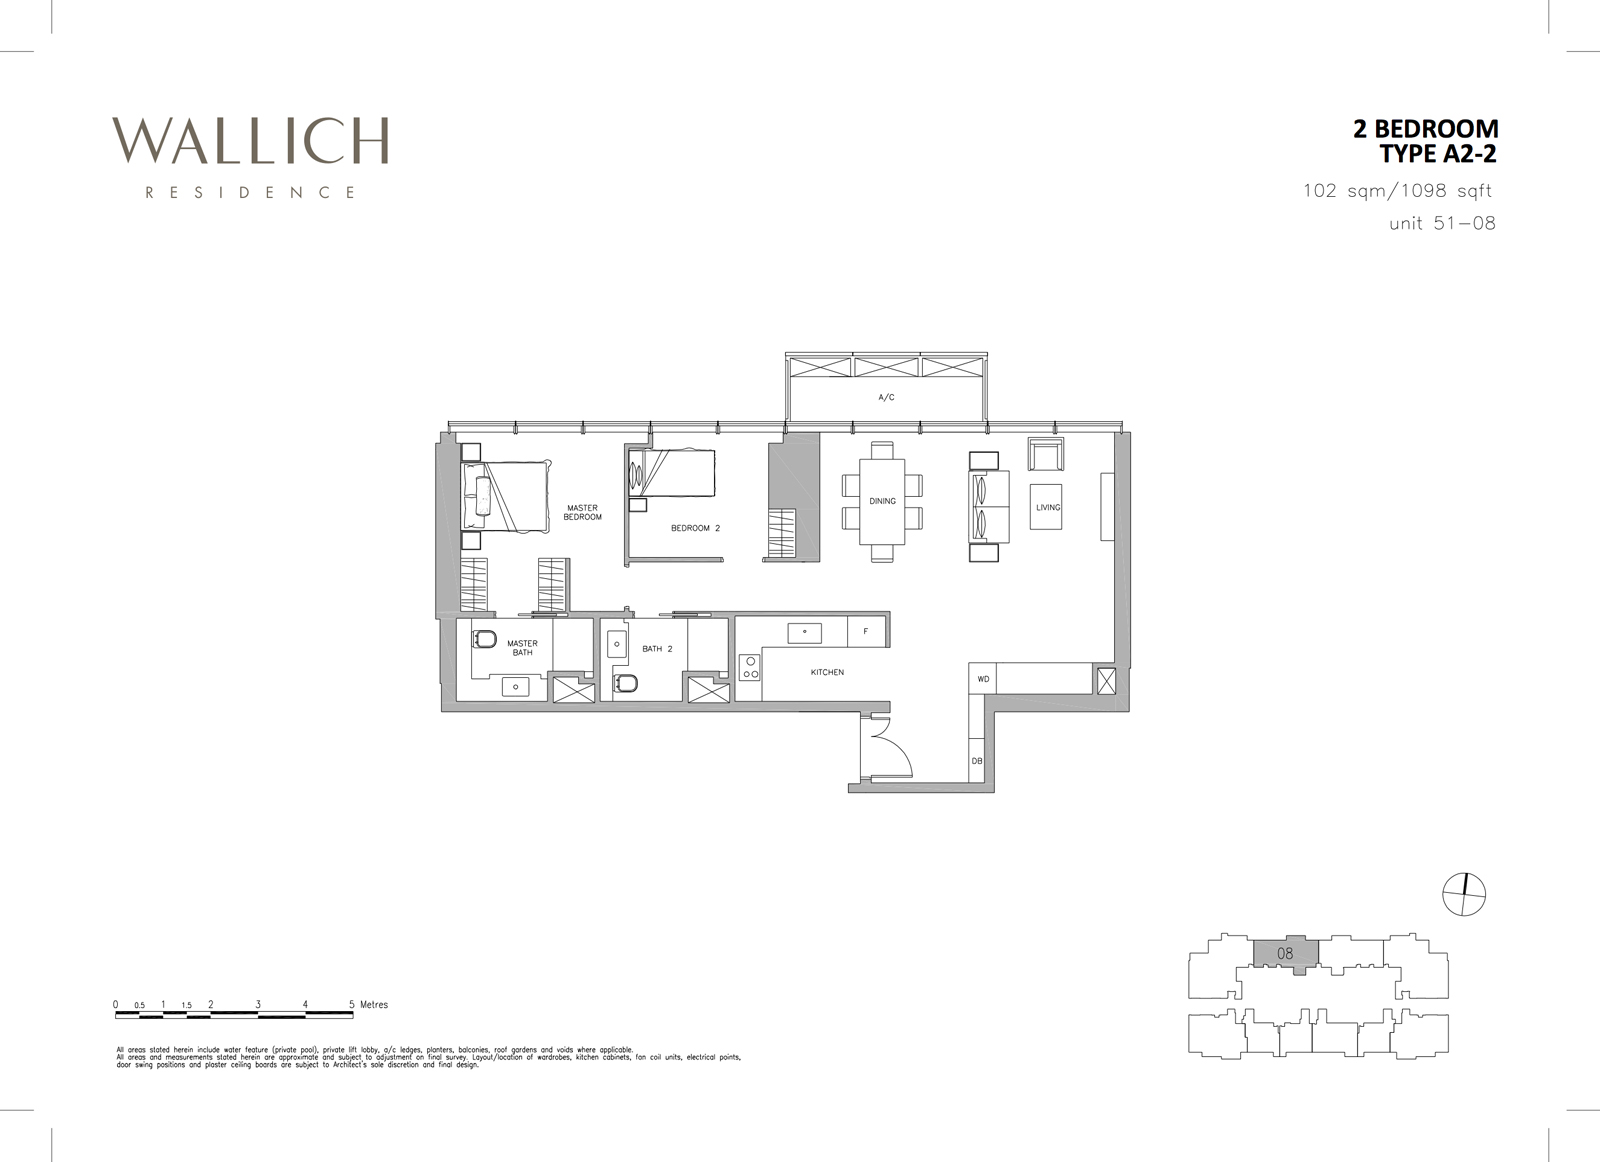 Wallich Residence Unit Layout Plans 2 Bedroom Electrical Plan